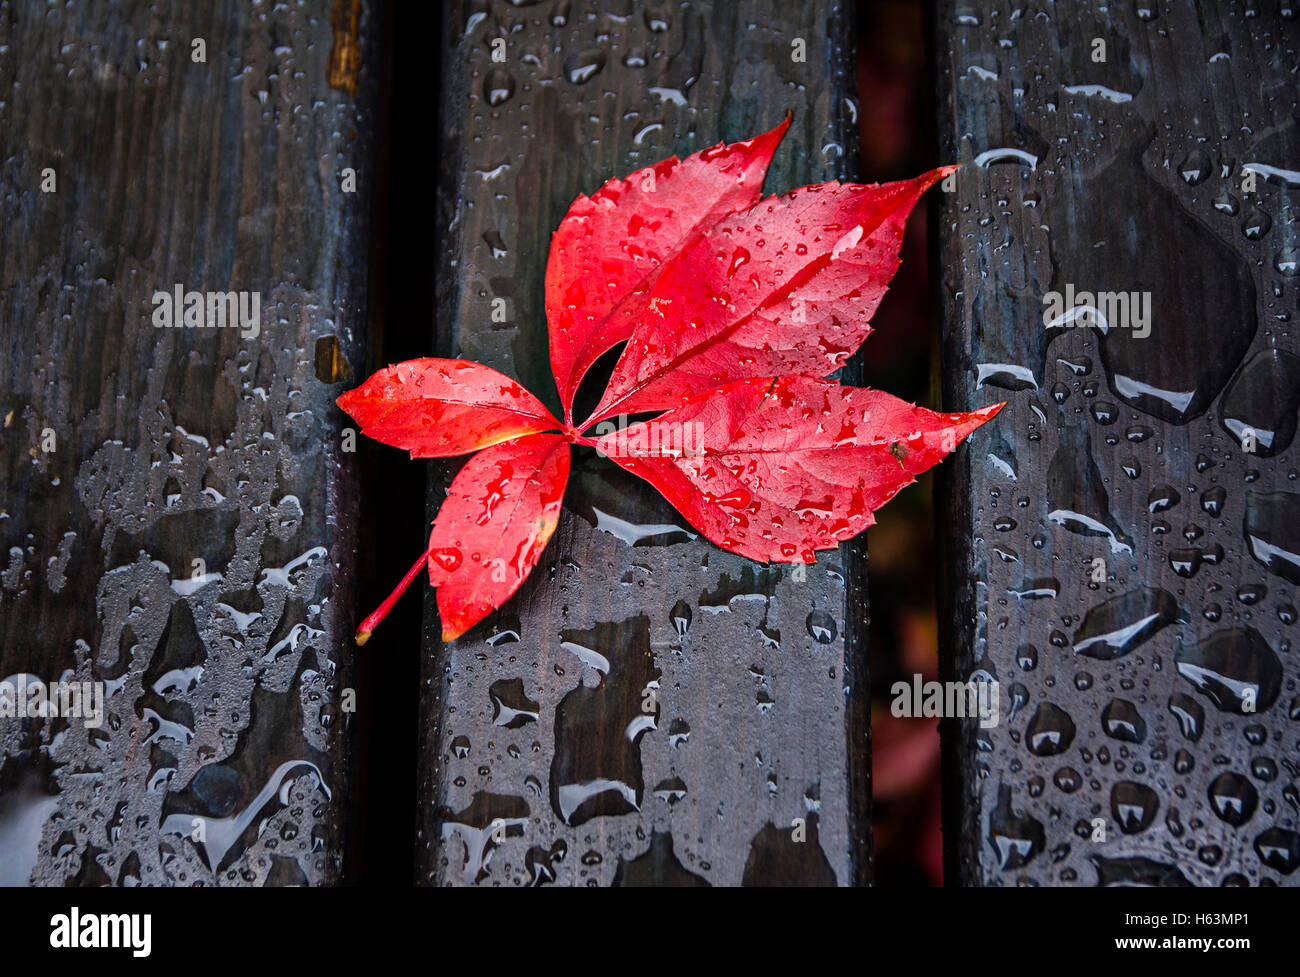 Red leaves, black bench and rain drops - Stock Image